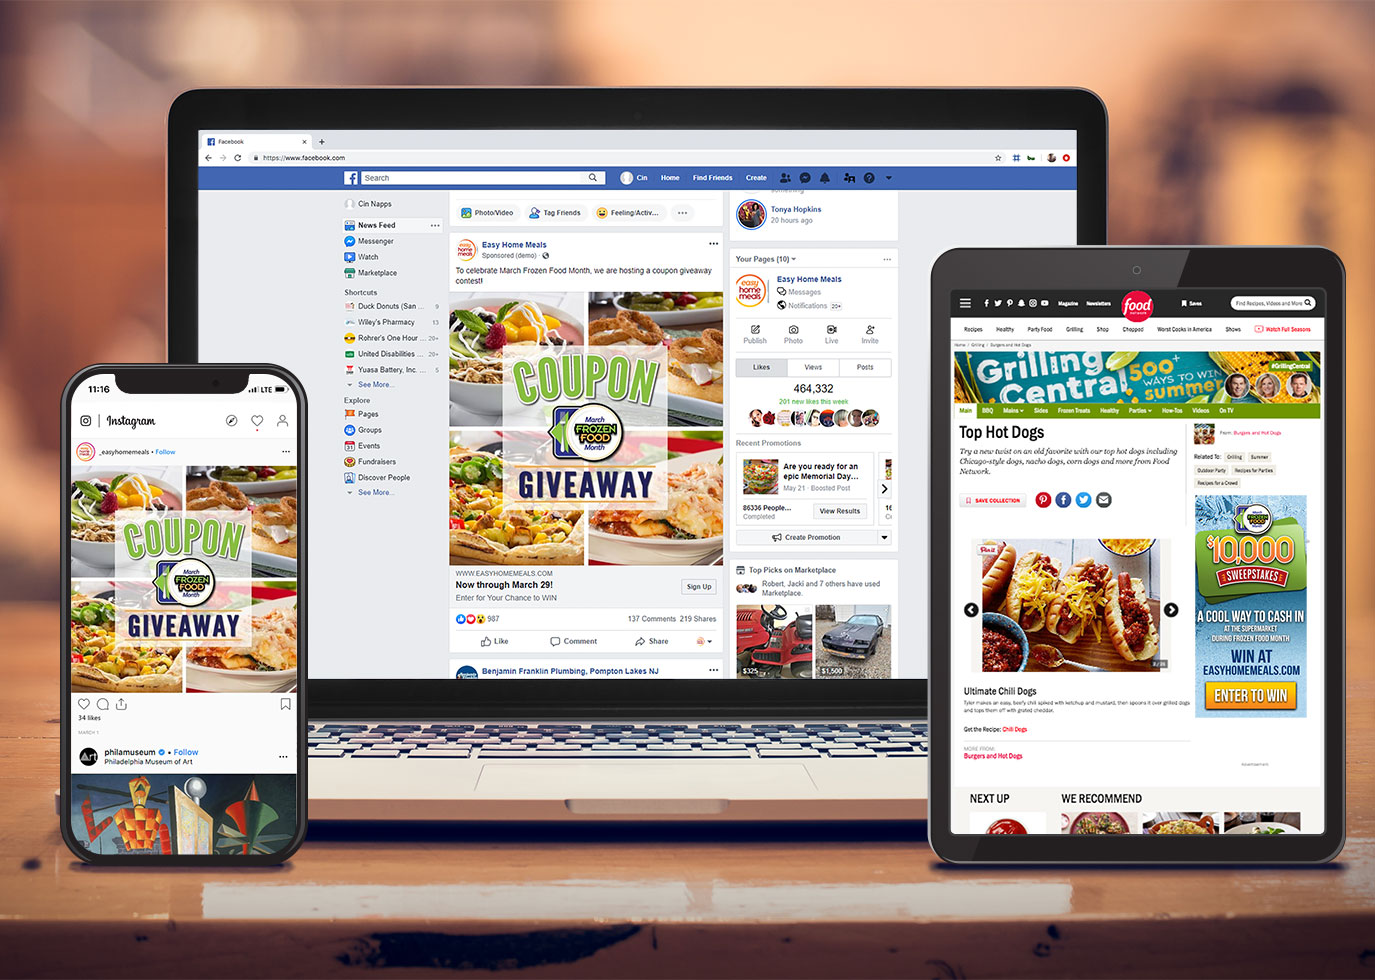 Digital Marketing Campaign for Easy Home Meals